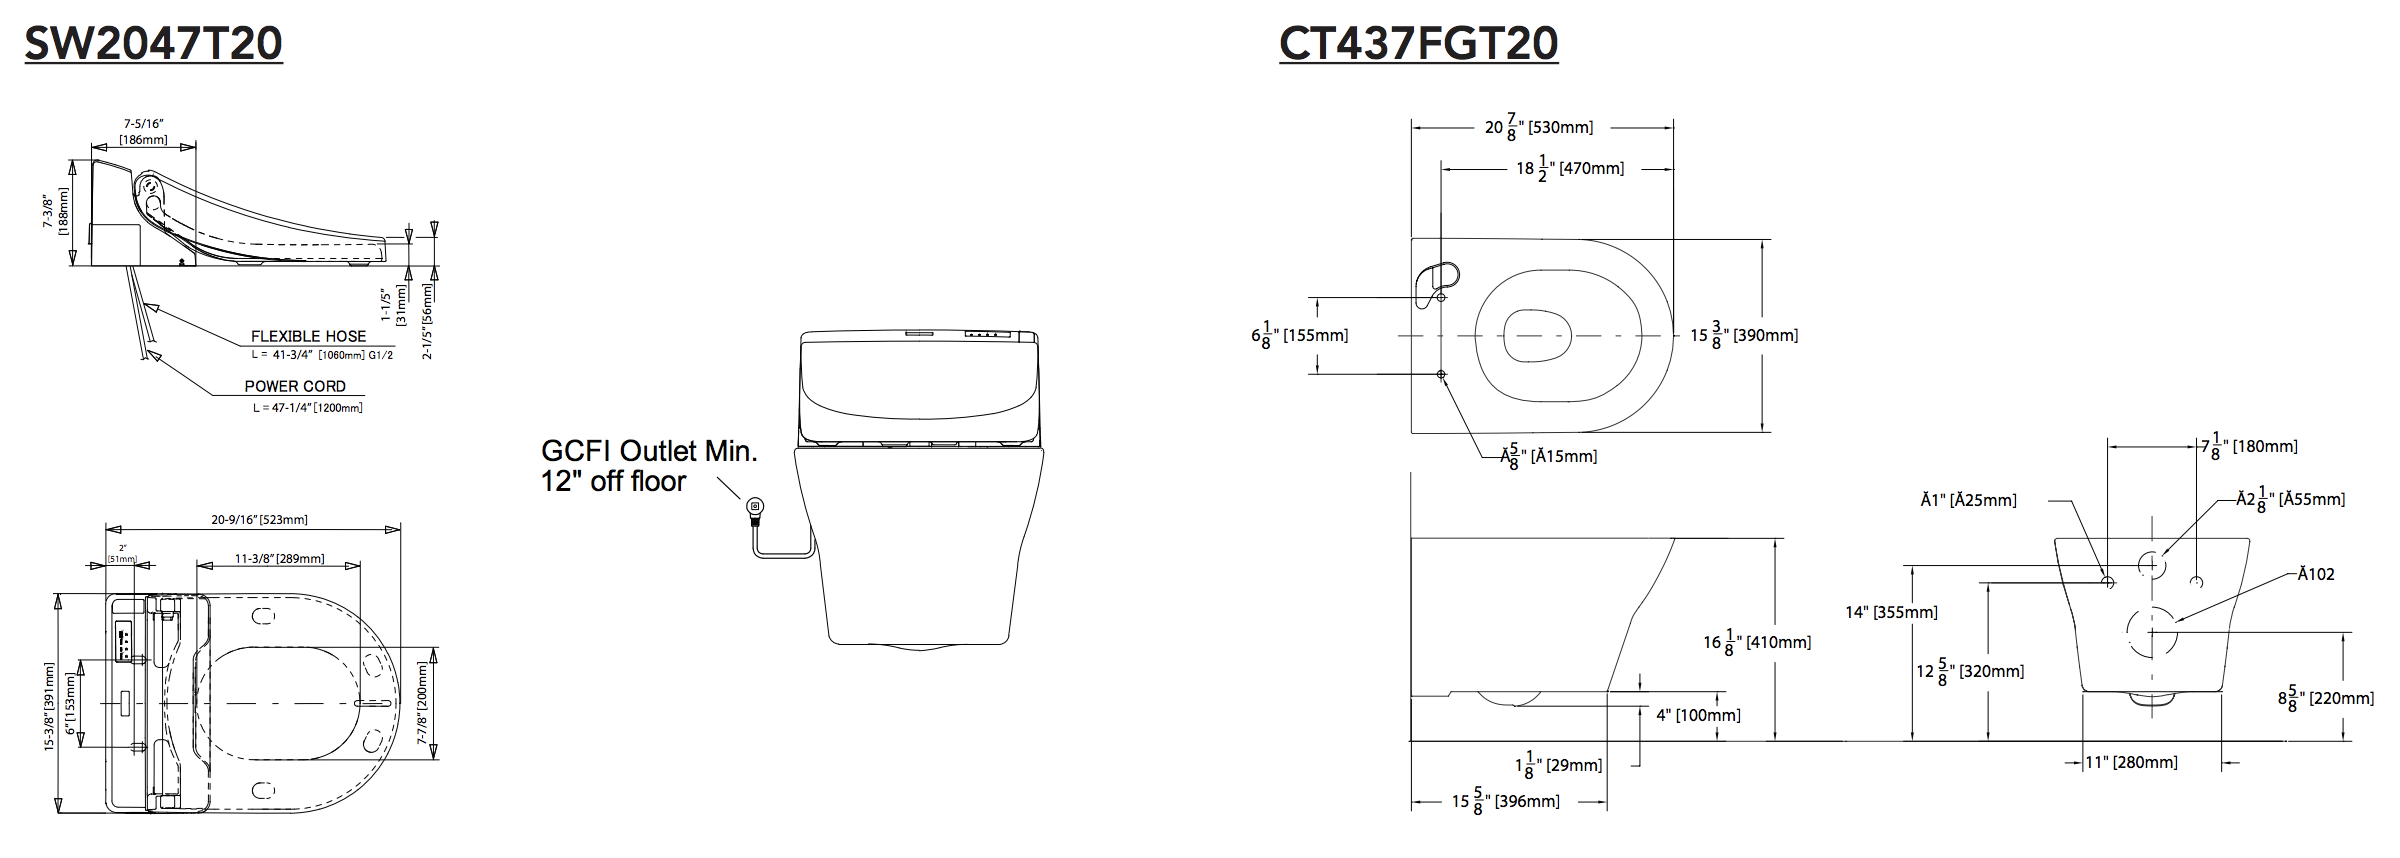 mh-washlet-c200-wall-hung-toilet-1.28-gpf-0.9-gpf-pex-supply-diagram-1.png